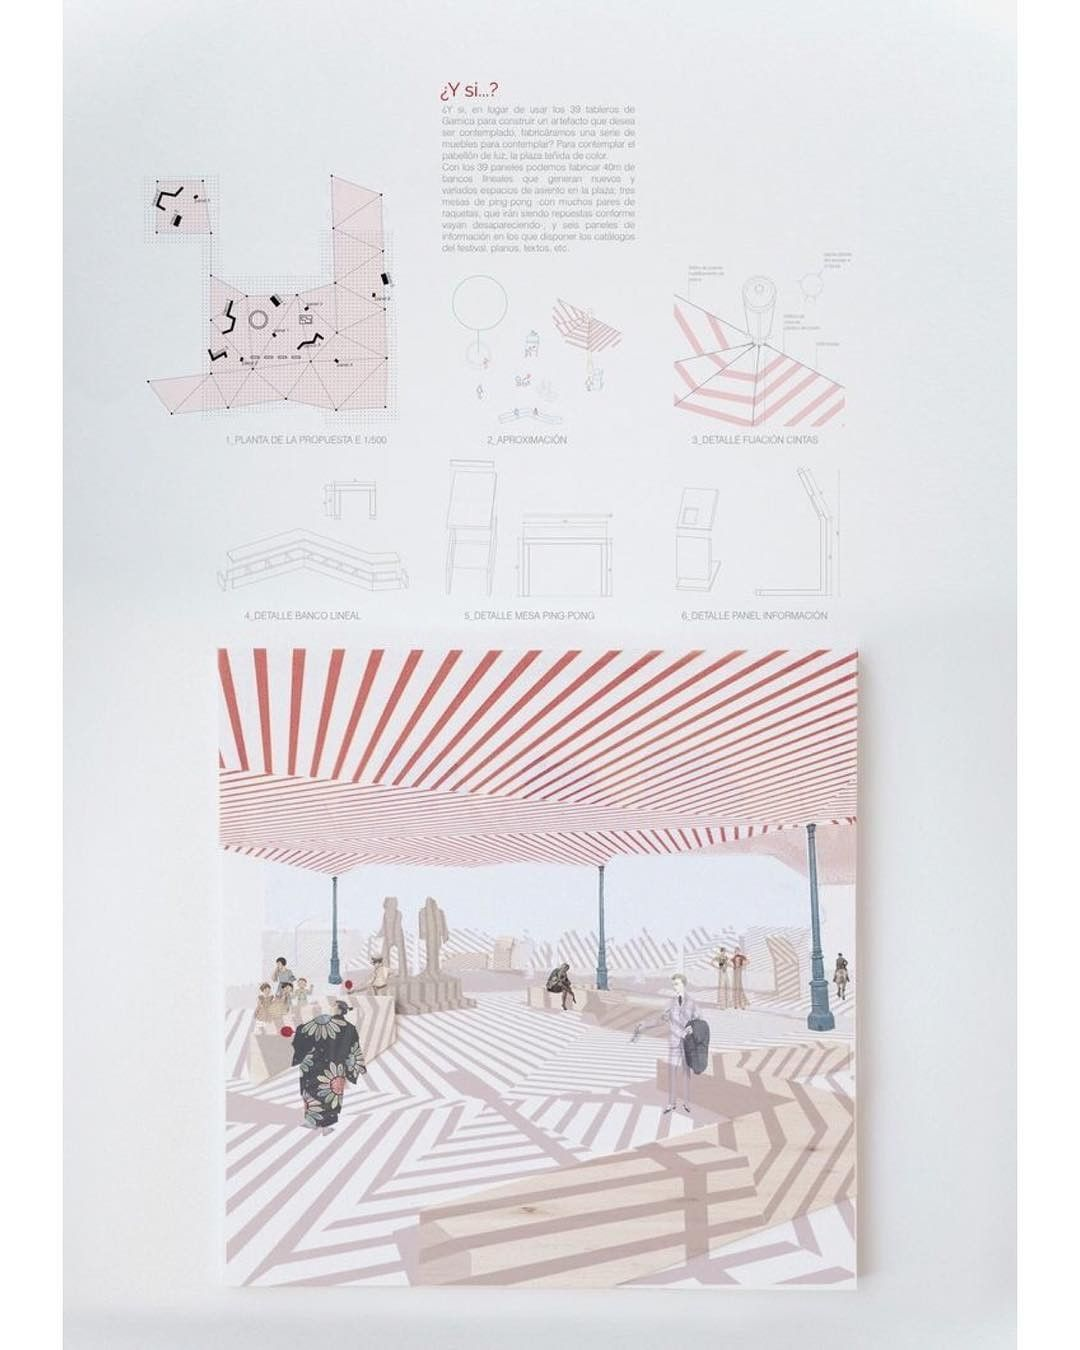 Little Black Box On Instagram We Love This Textured Shadows Afab Architects Littl Architecture Drawing Architecture Illustration Layout Architecture